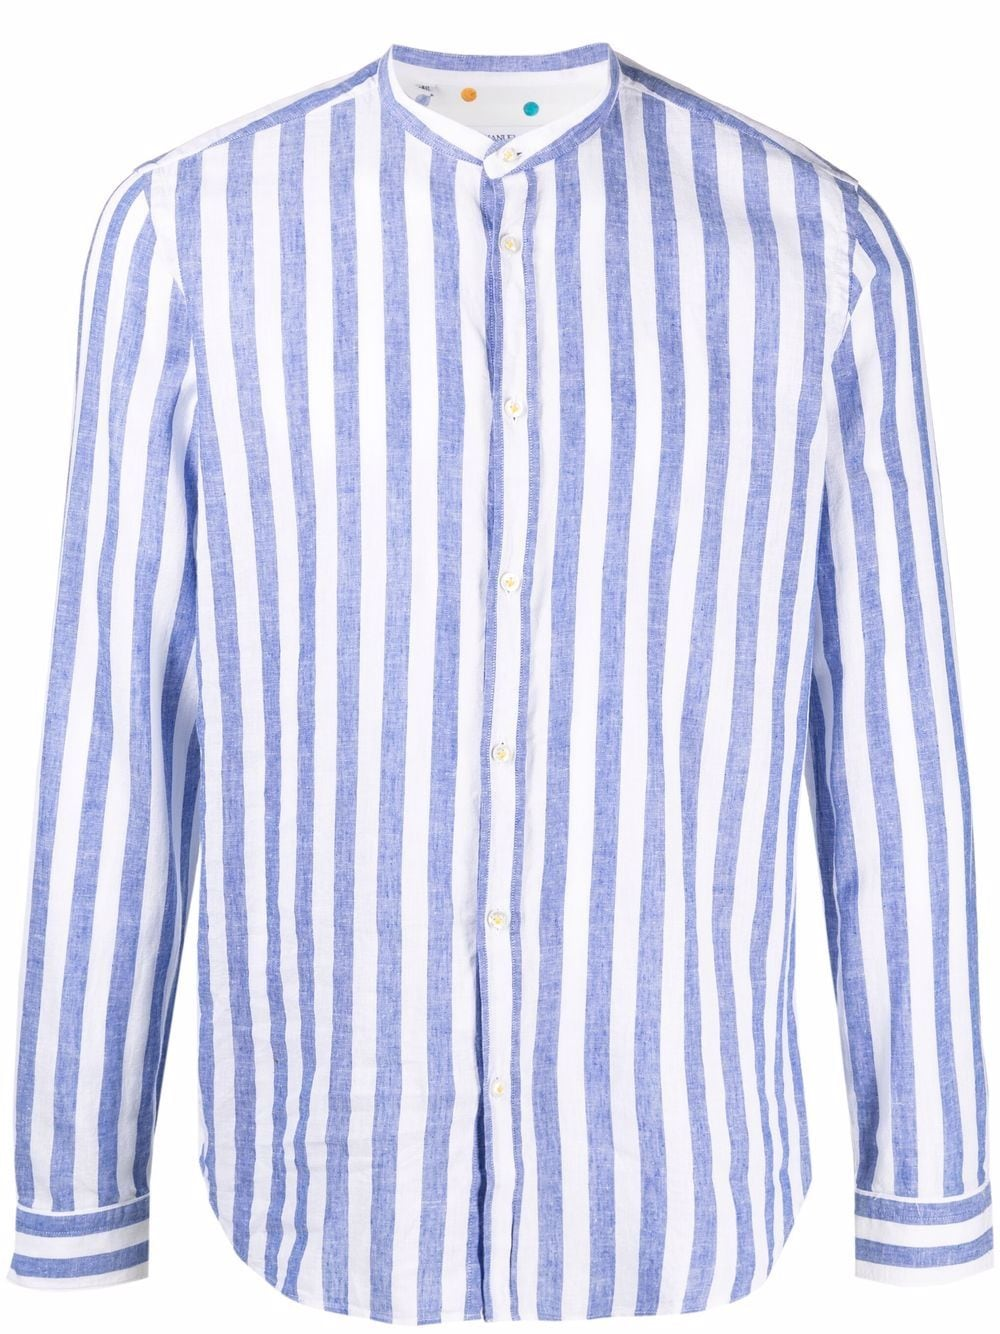 Blue and white cotton and linen collarless striped shirt MANUEL RITZ      3032E604L-21324287